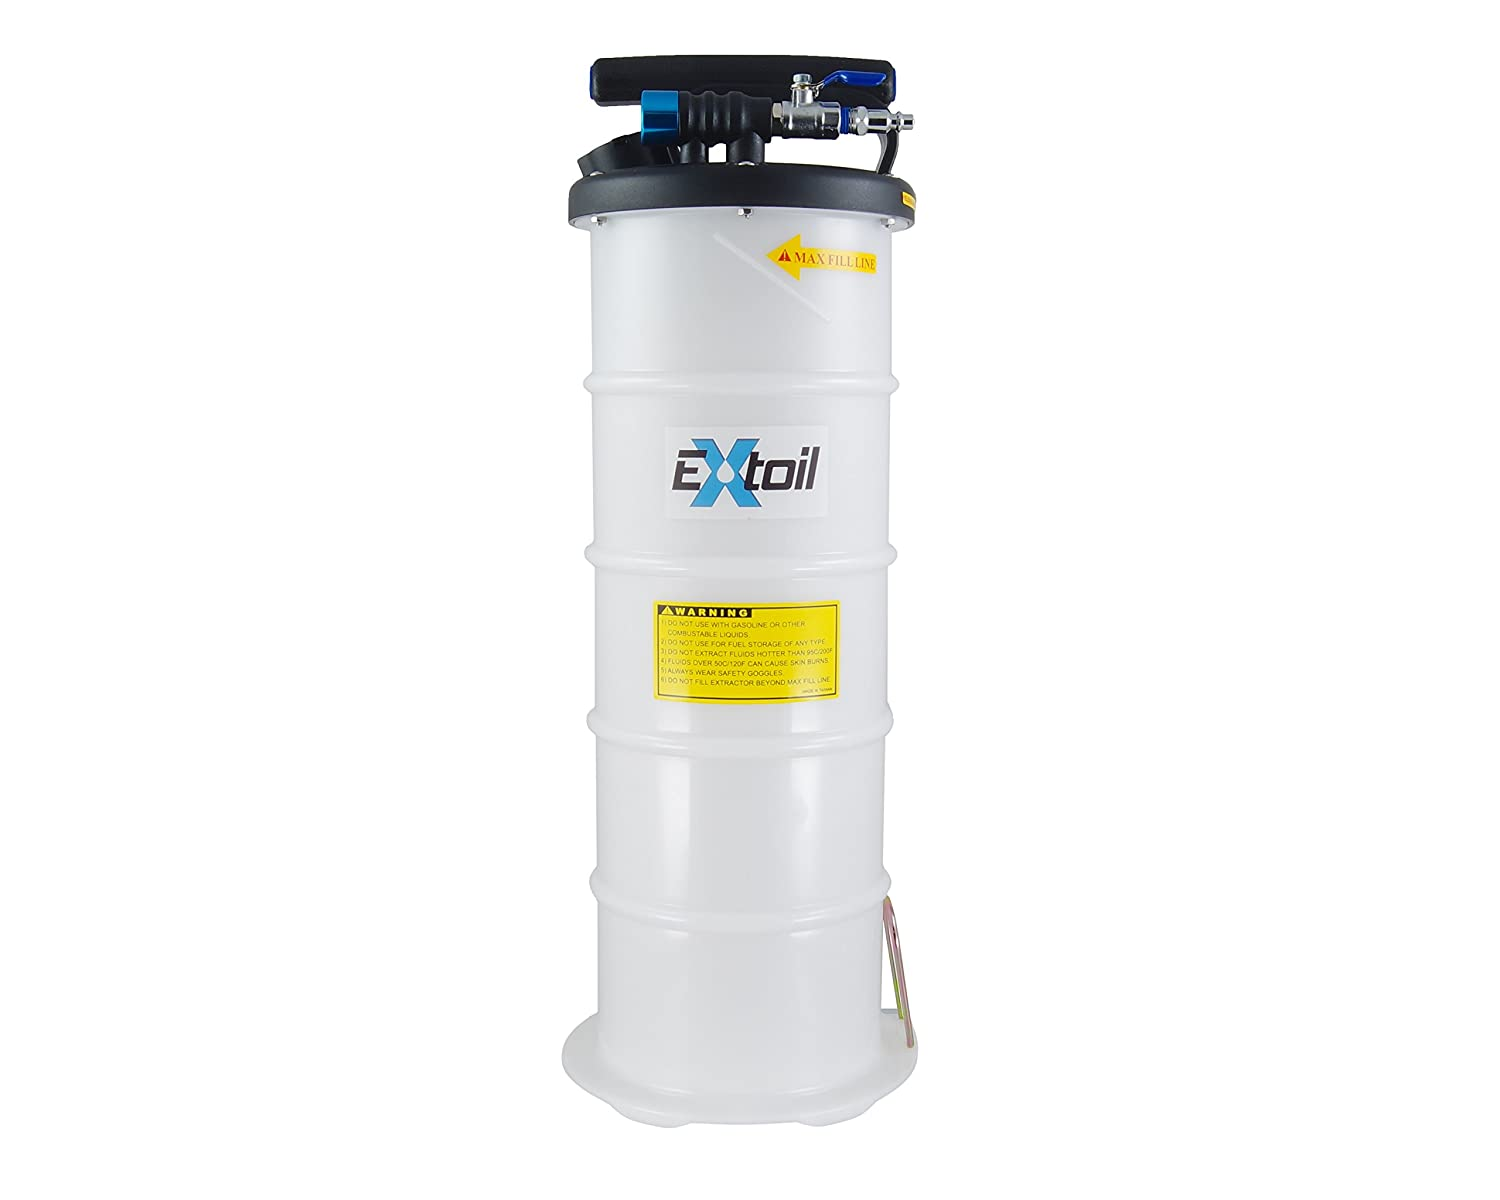 EXtoil 6 Liter Professional Manual//Pneumatic Oil Extractor